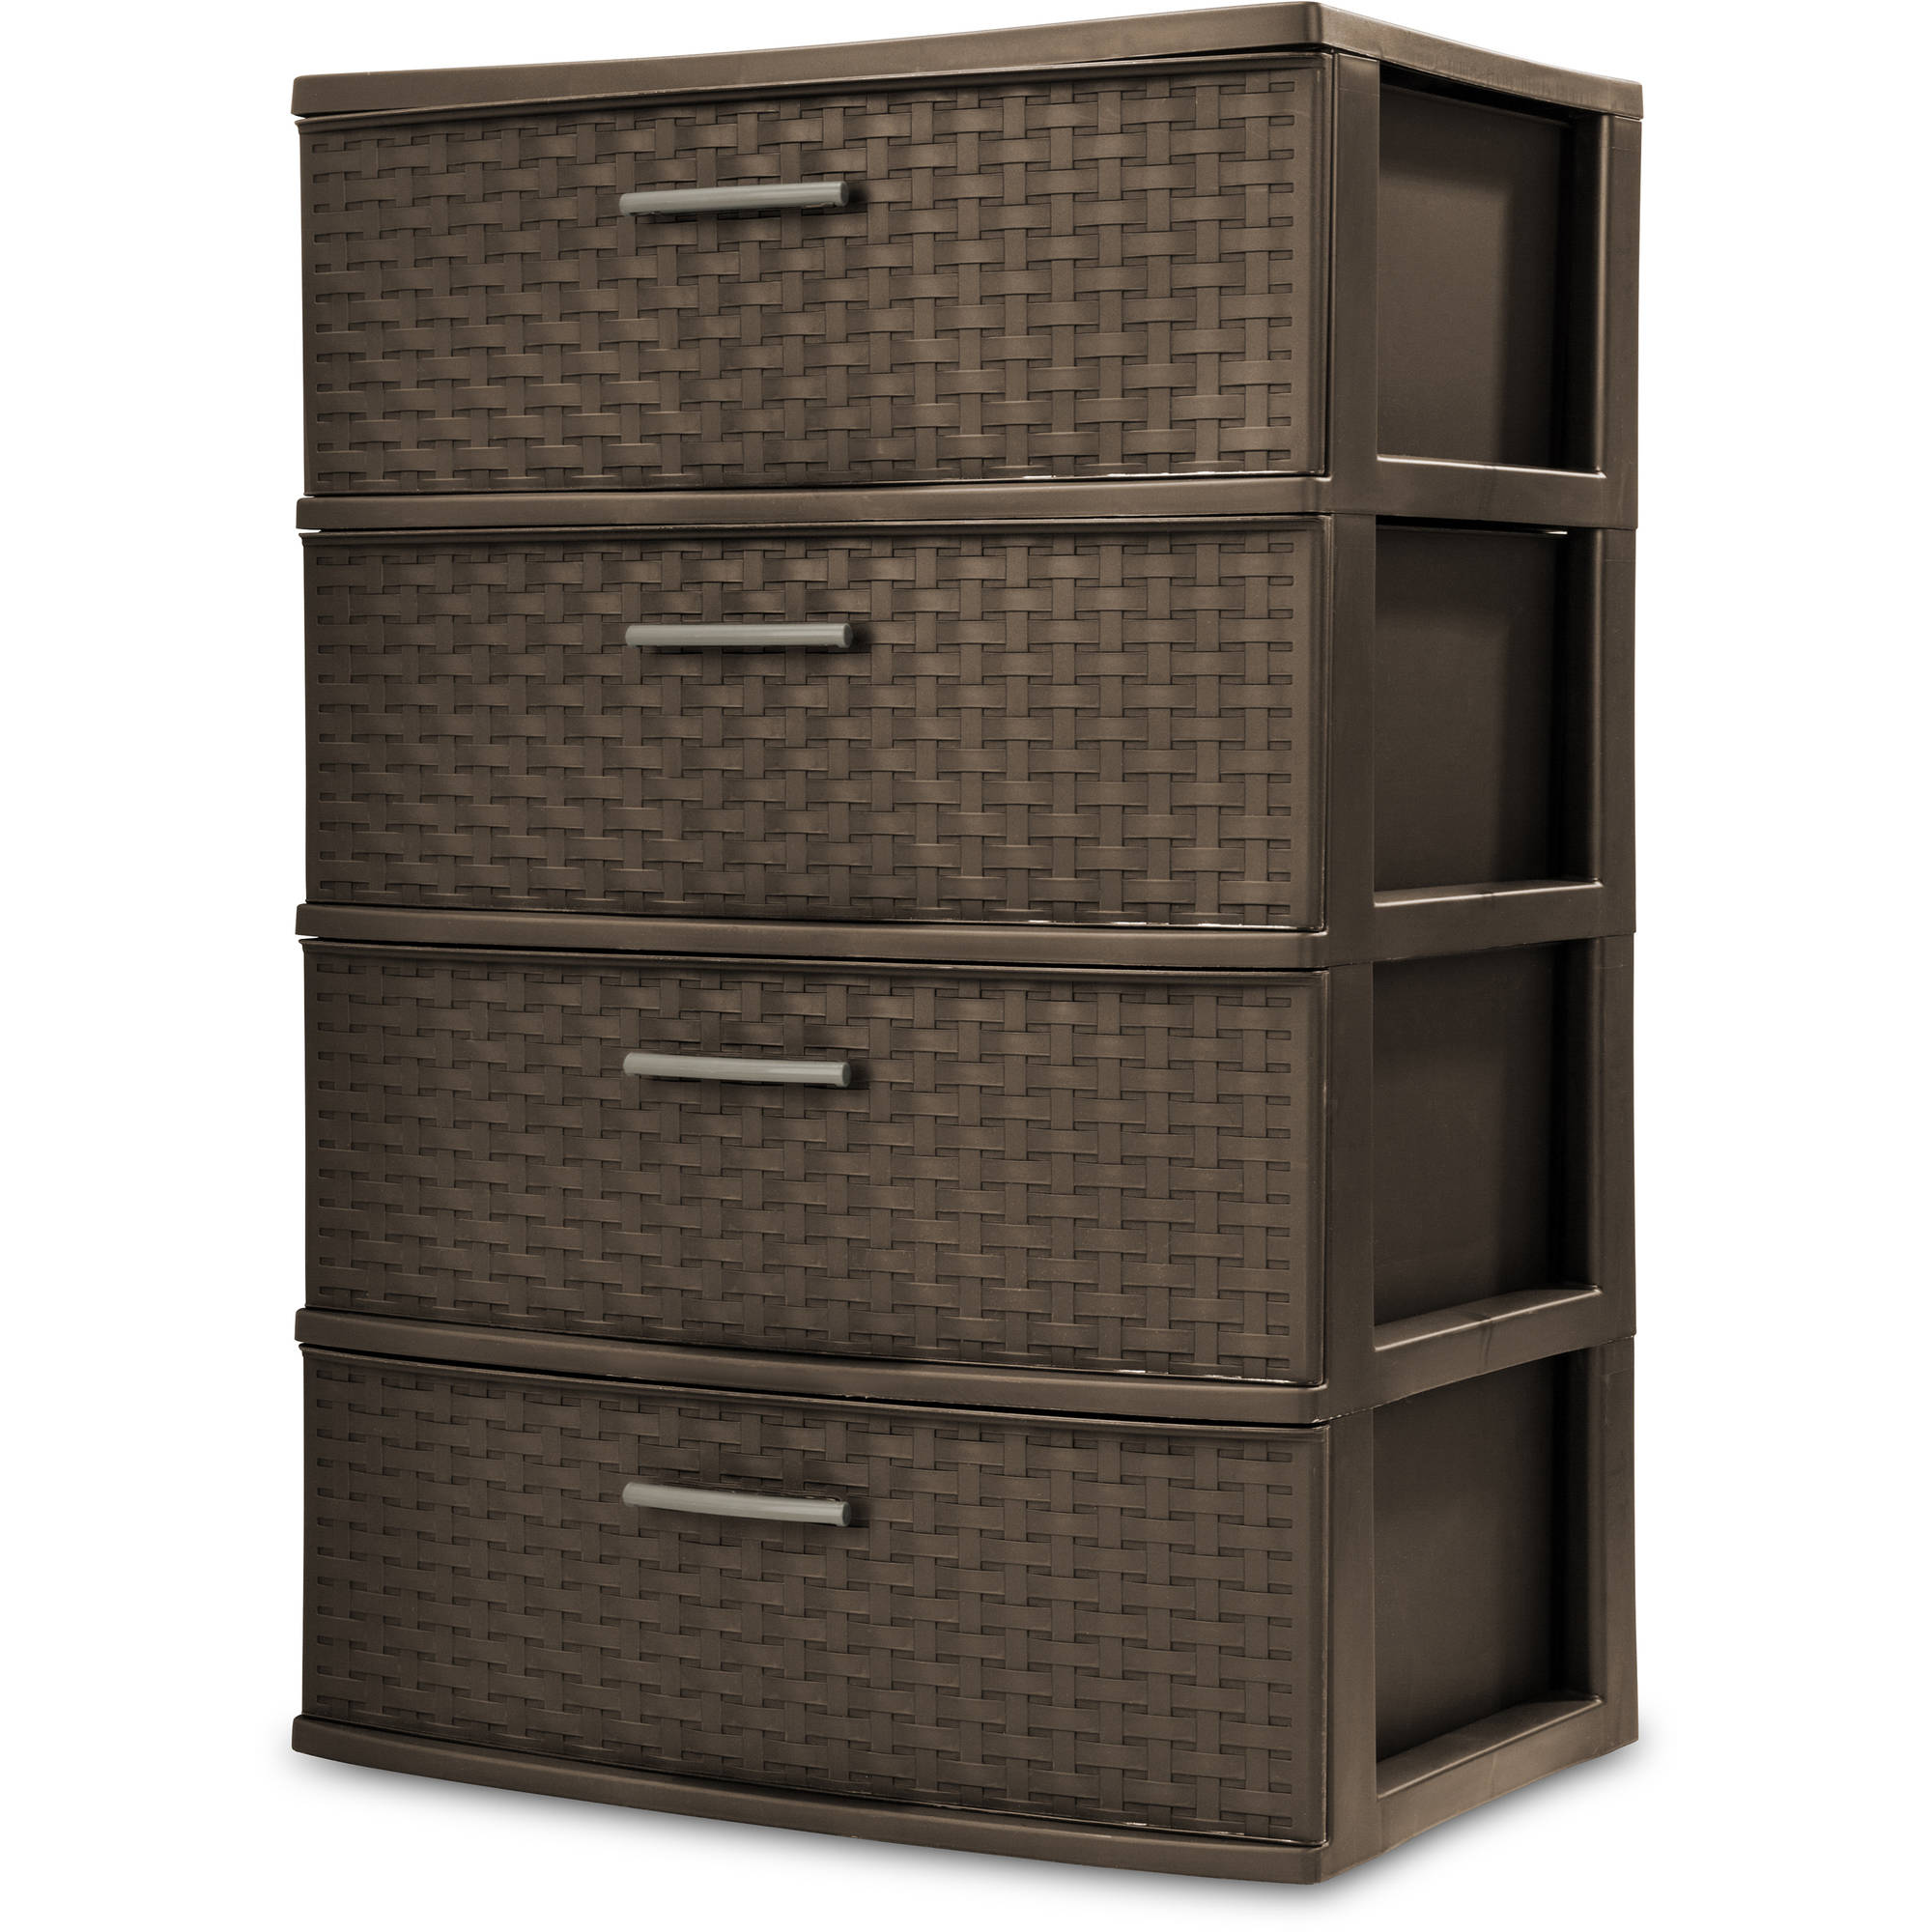 Sterilite 4 Drawer Wide Weave Tower, Espresso